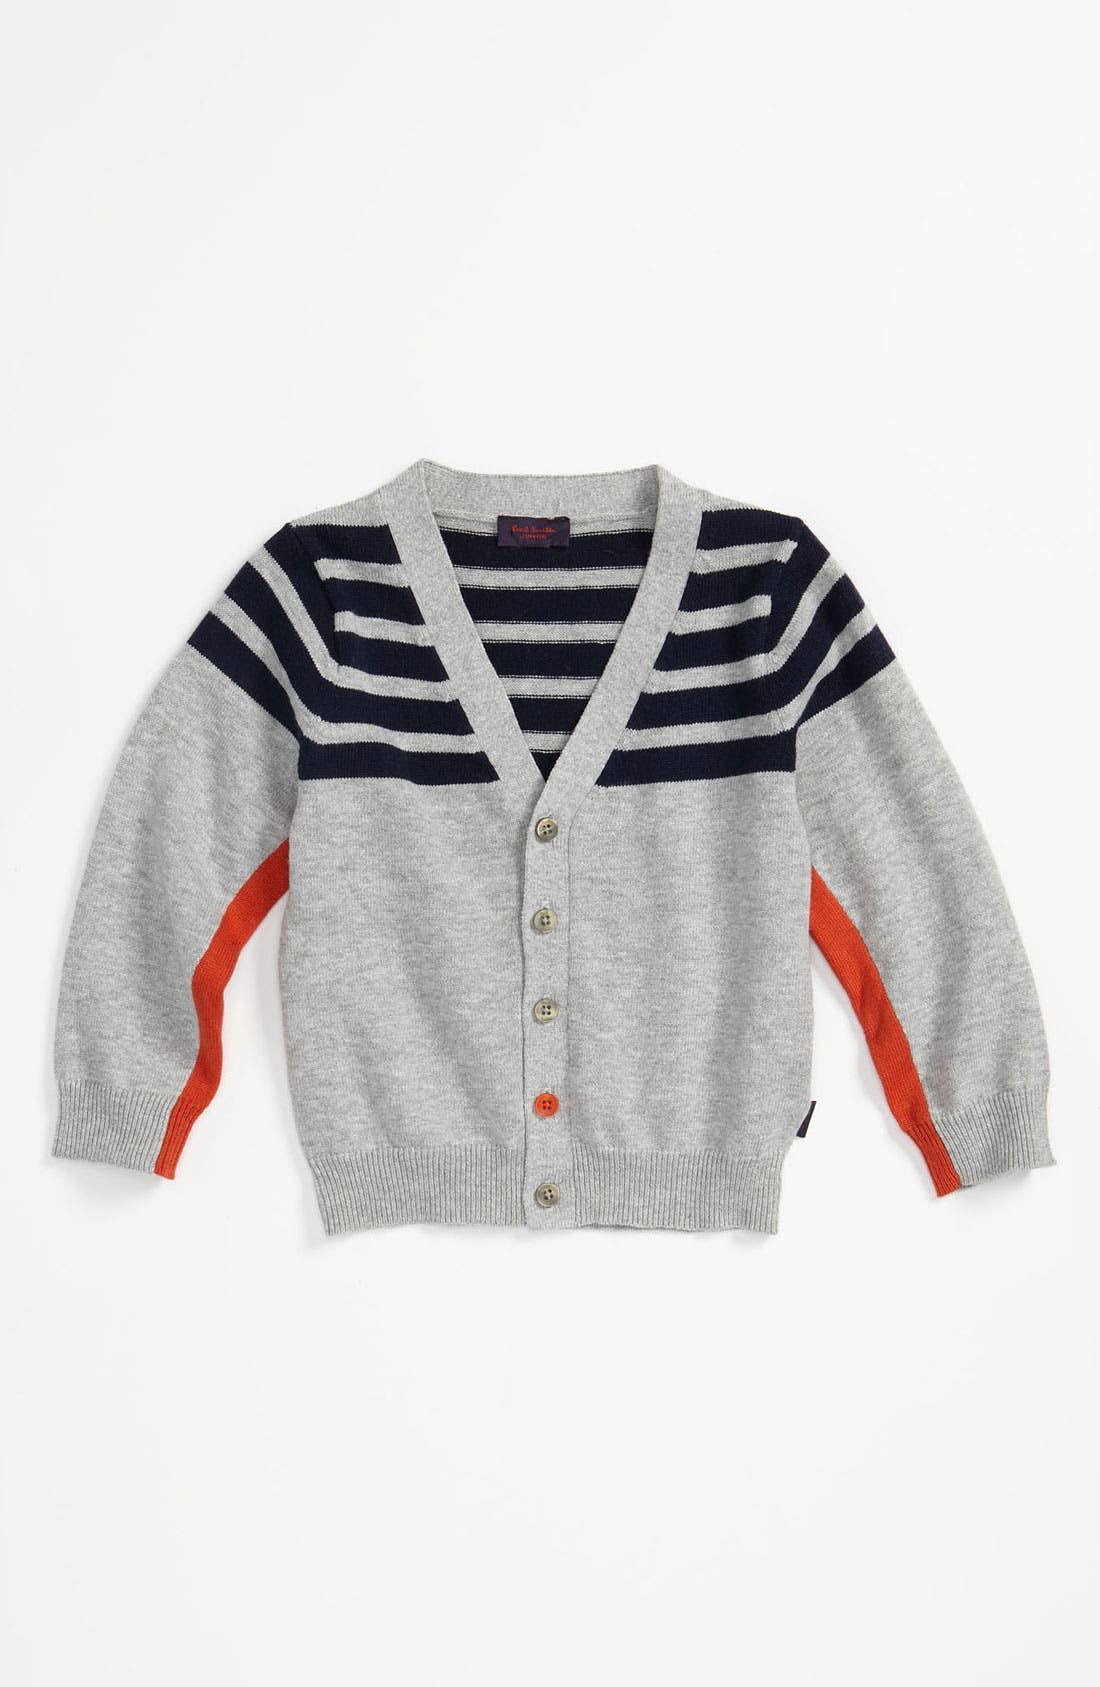 Main Image - Paul Smith Junior 'Corner' Cardigan (Toddler)